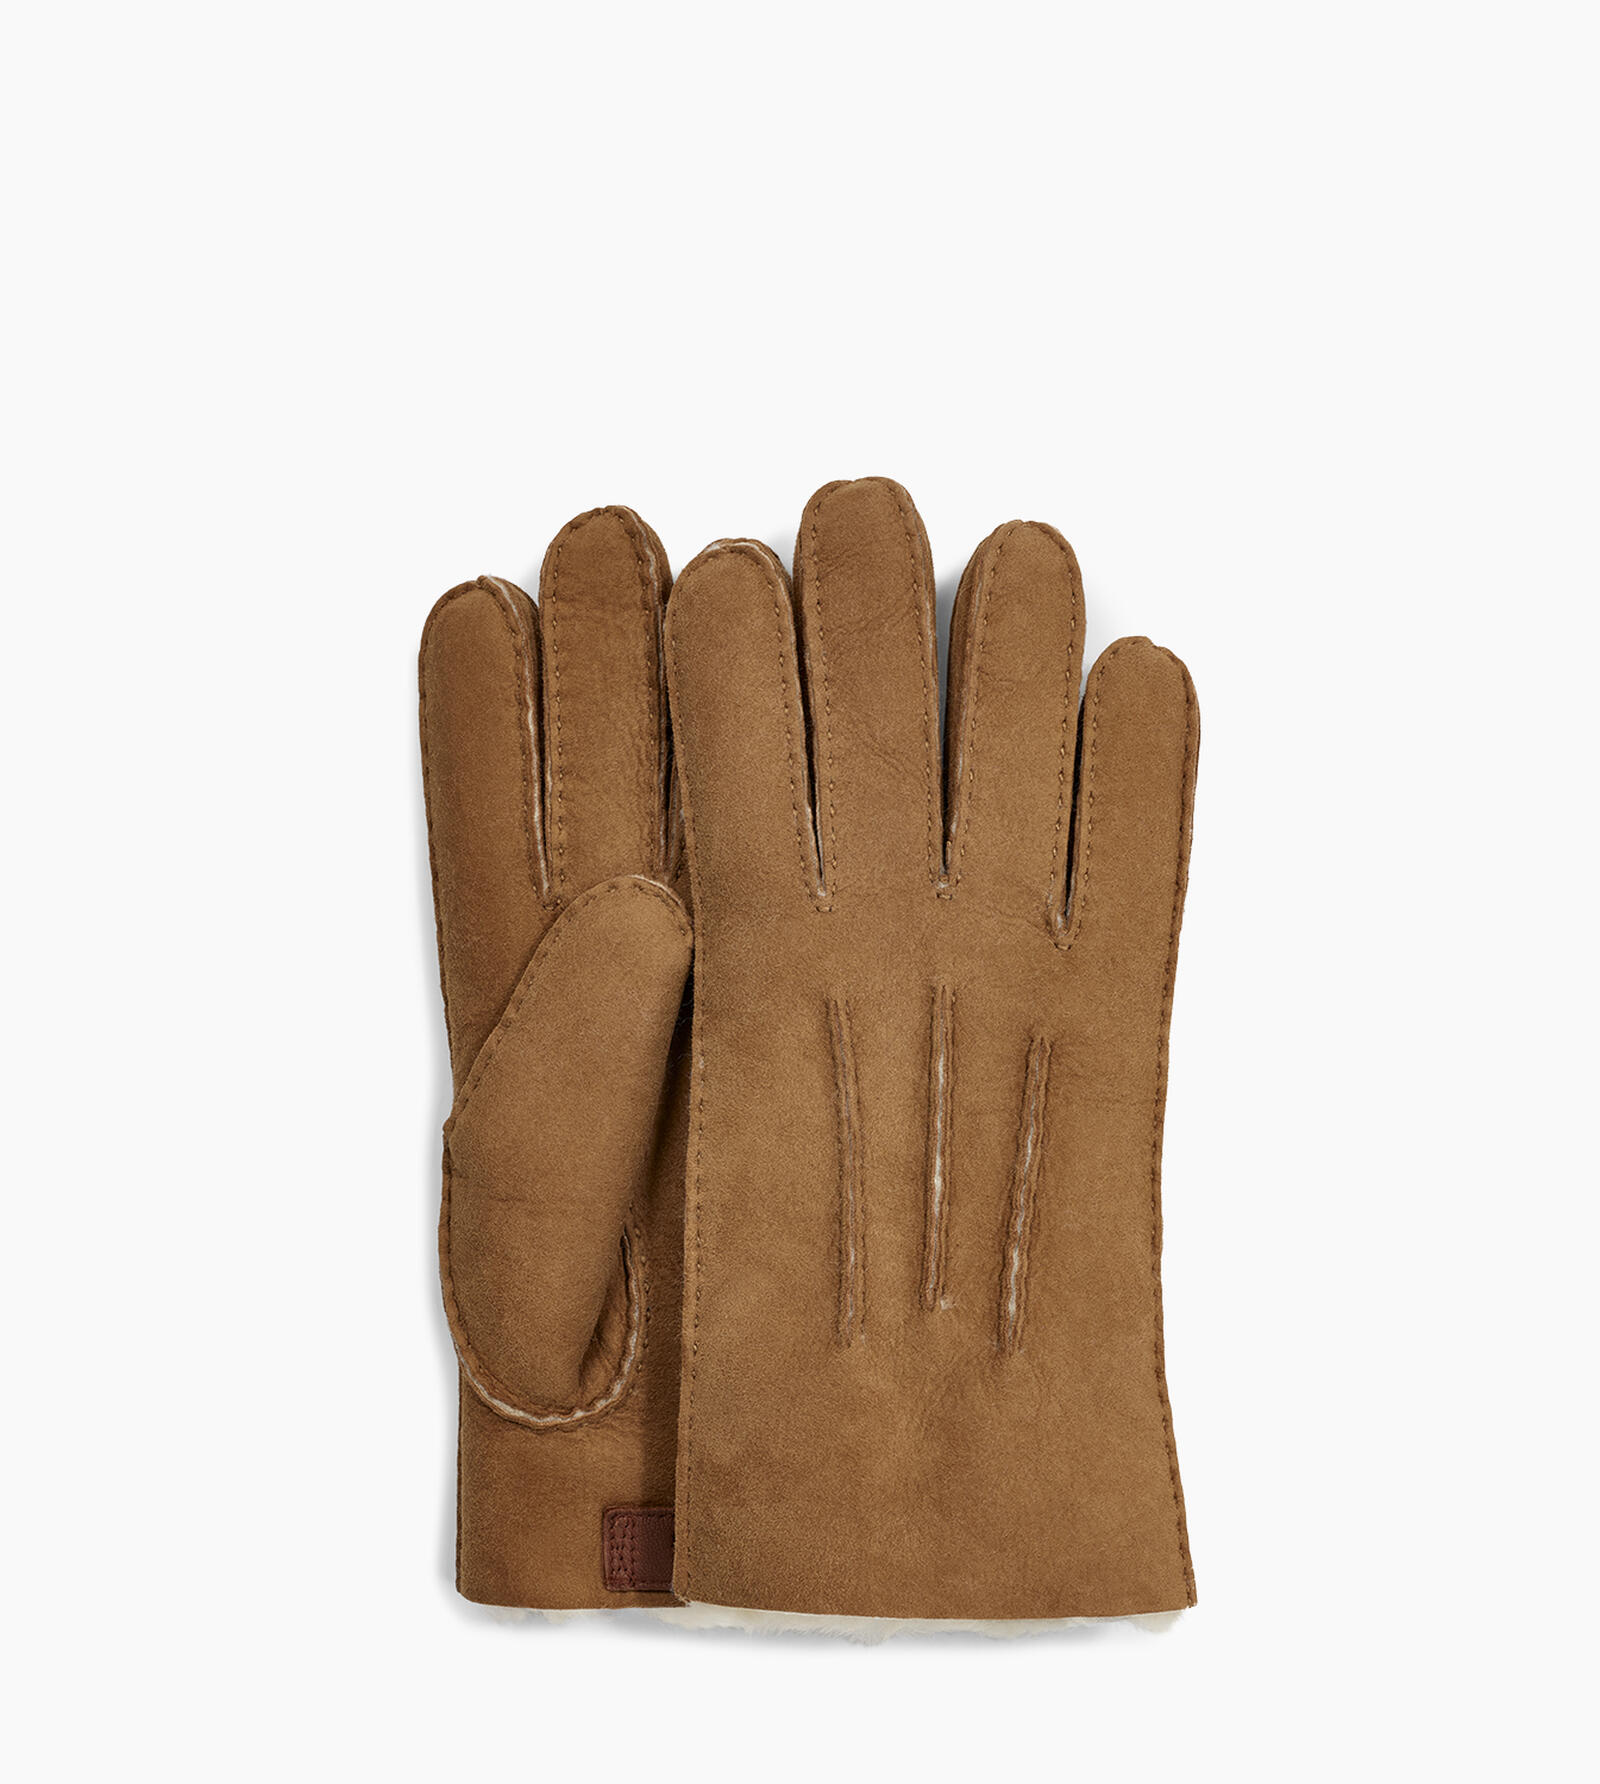 Contrast Sheepskin Glove